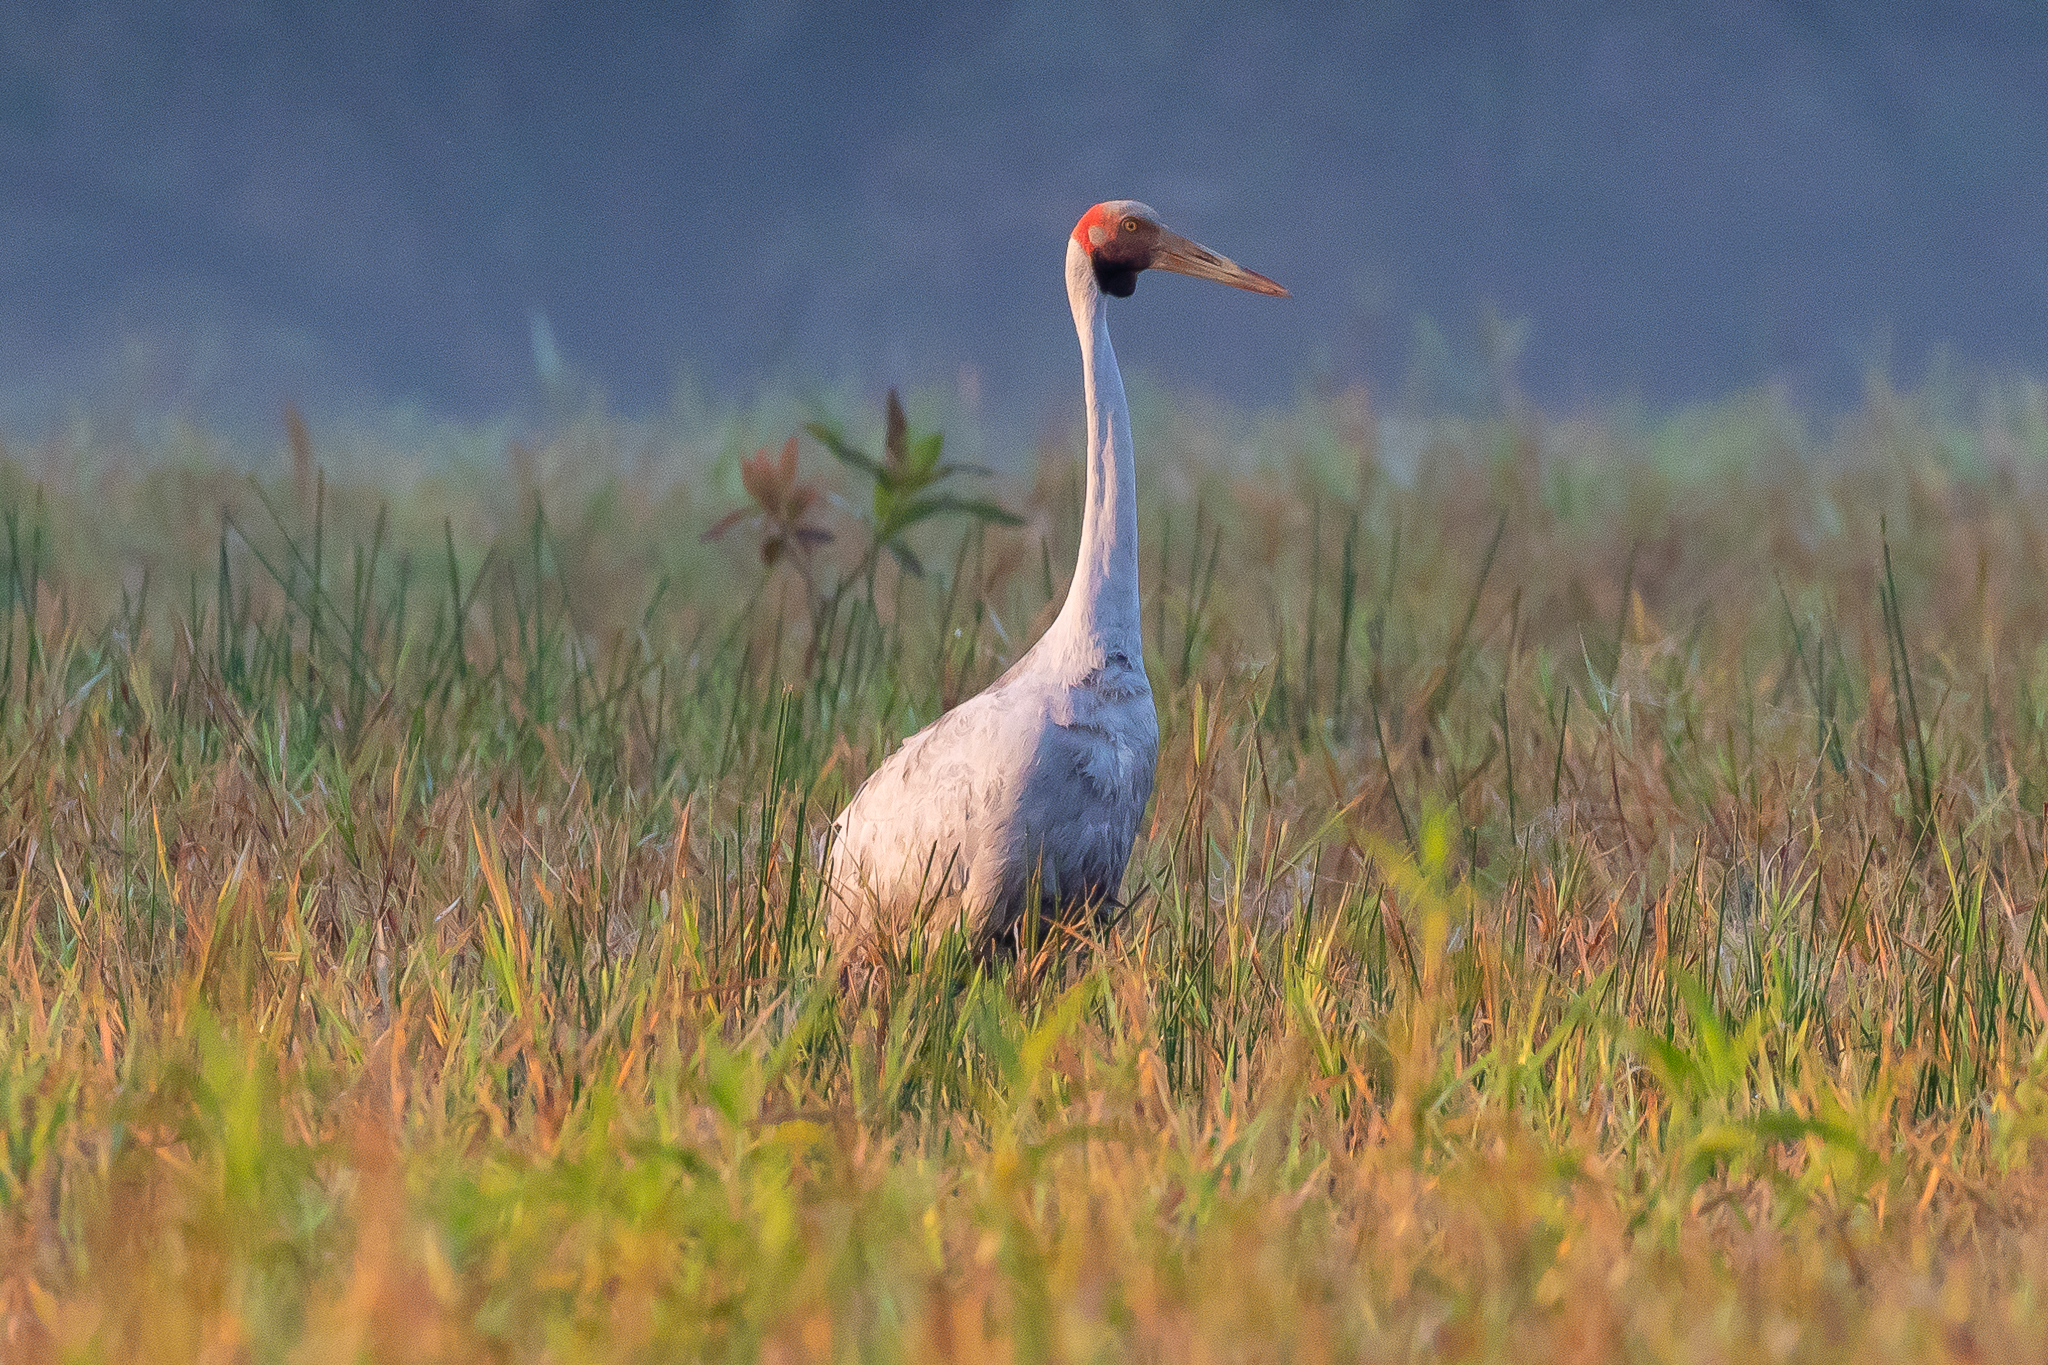 A Brolga (1.3 m) grazes in the marshes. Brolgas are found across the north of Australia but migrate as far south as Victoria in summer.